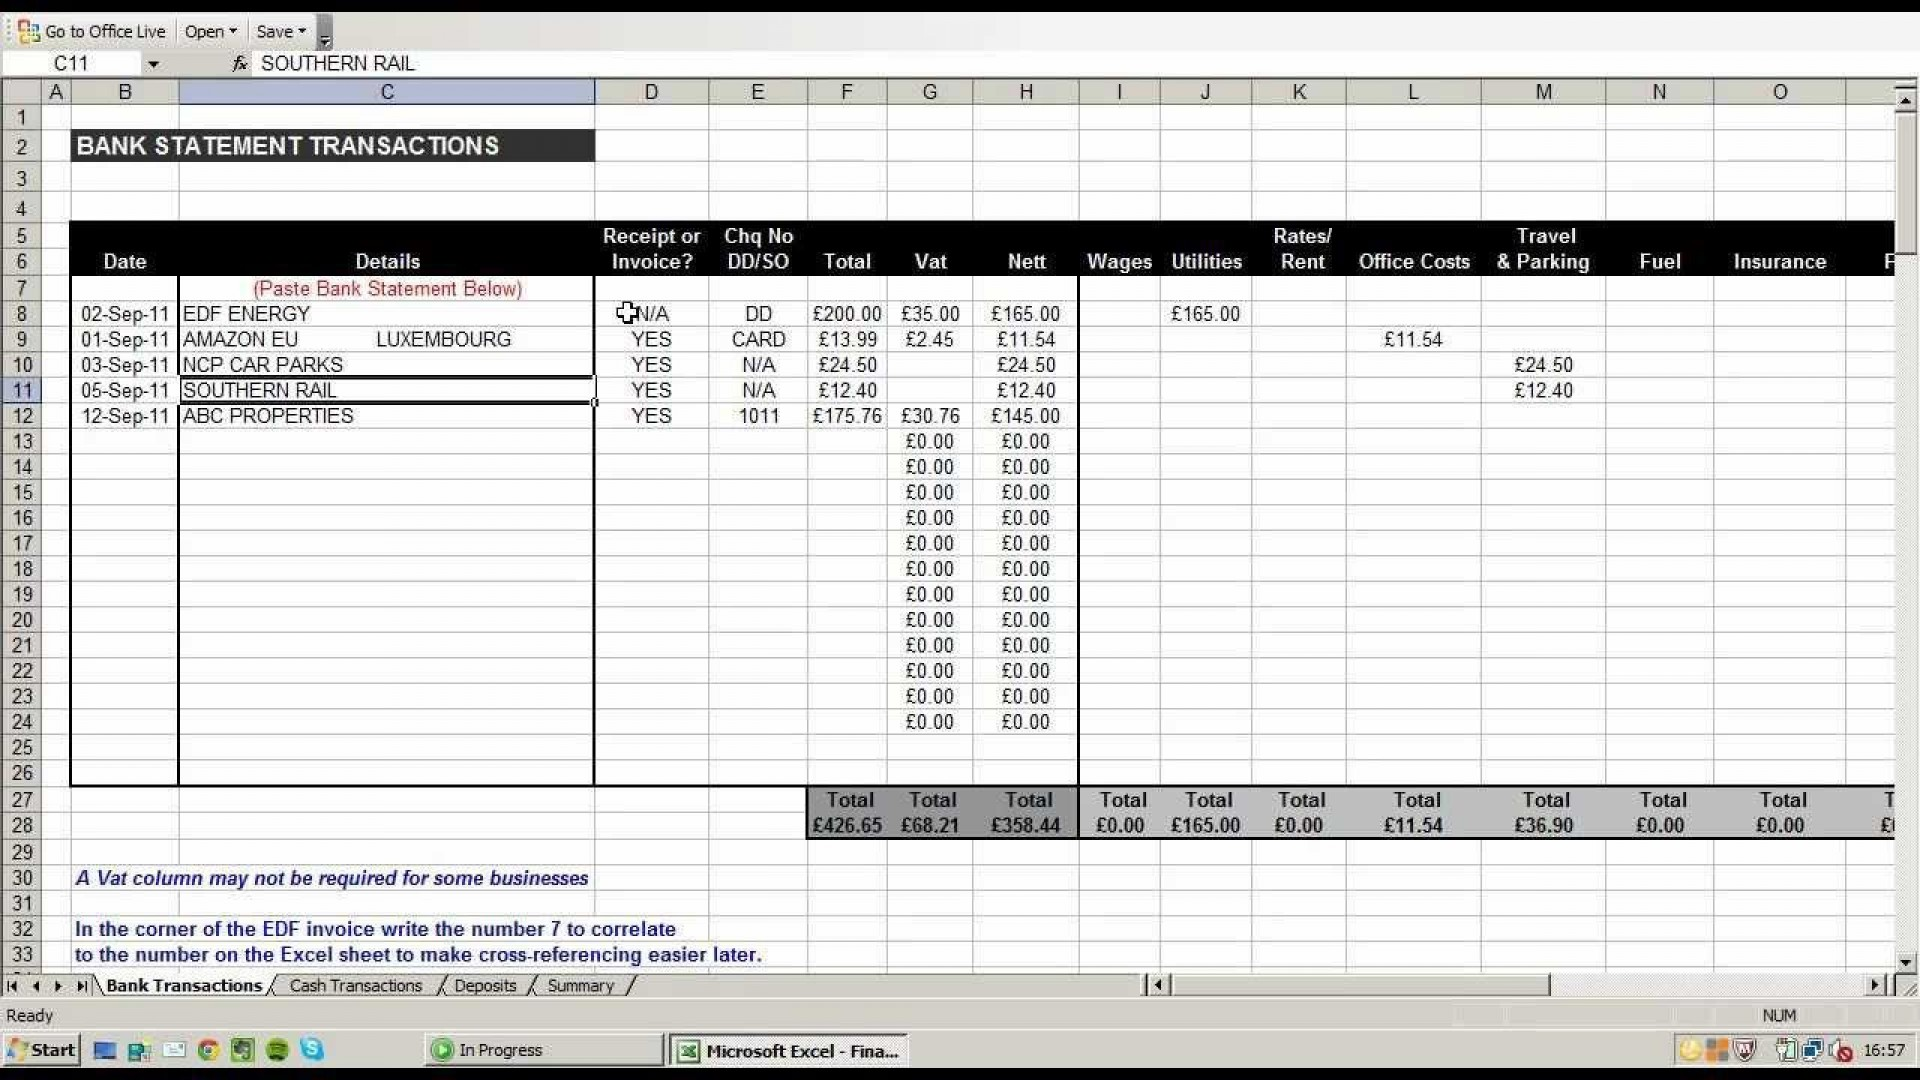 006 Fascinating Excel Busines Expense Tracking Template High Definition 1920